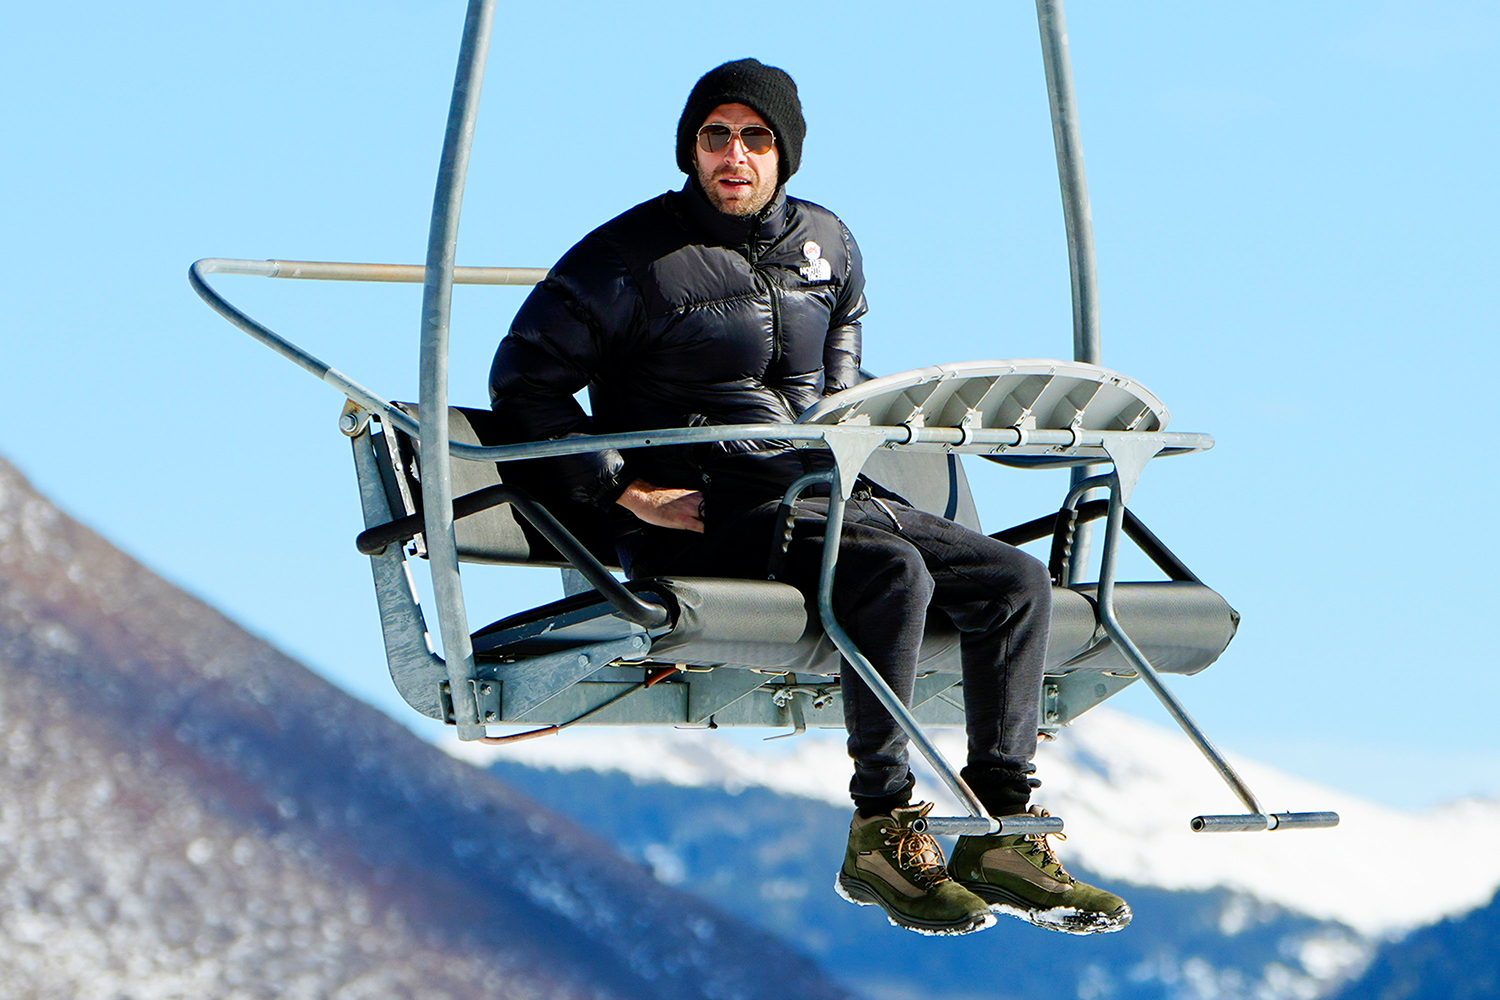 Chris Martin takes a solo trip up a ski lift for some sight seeing in Aspen Colorado